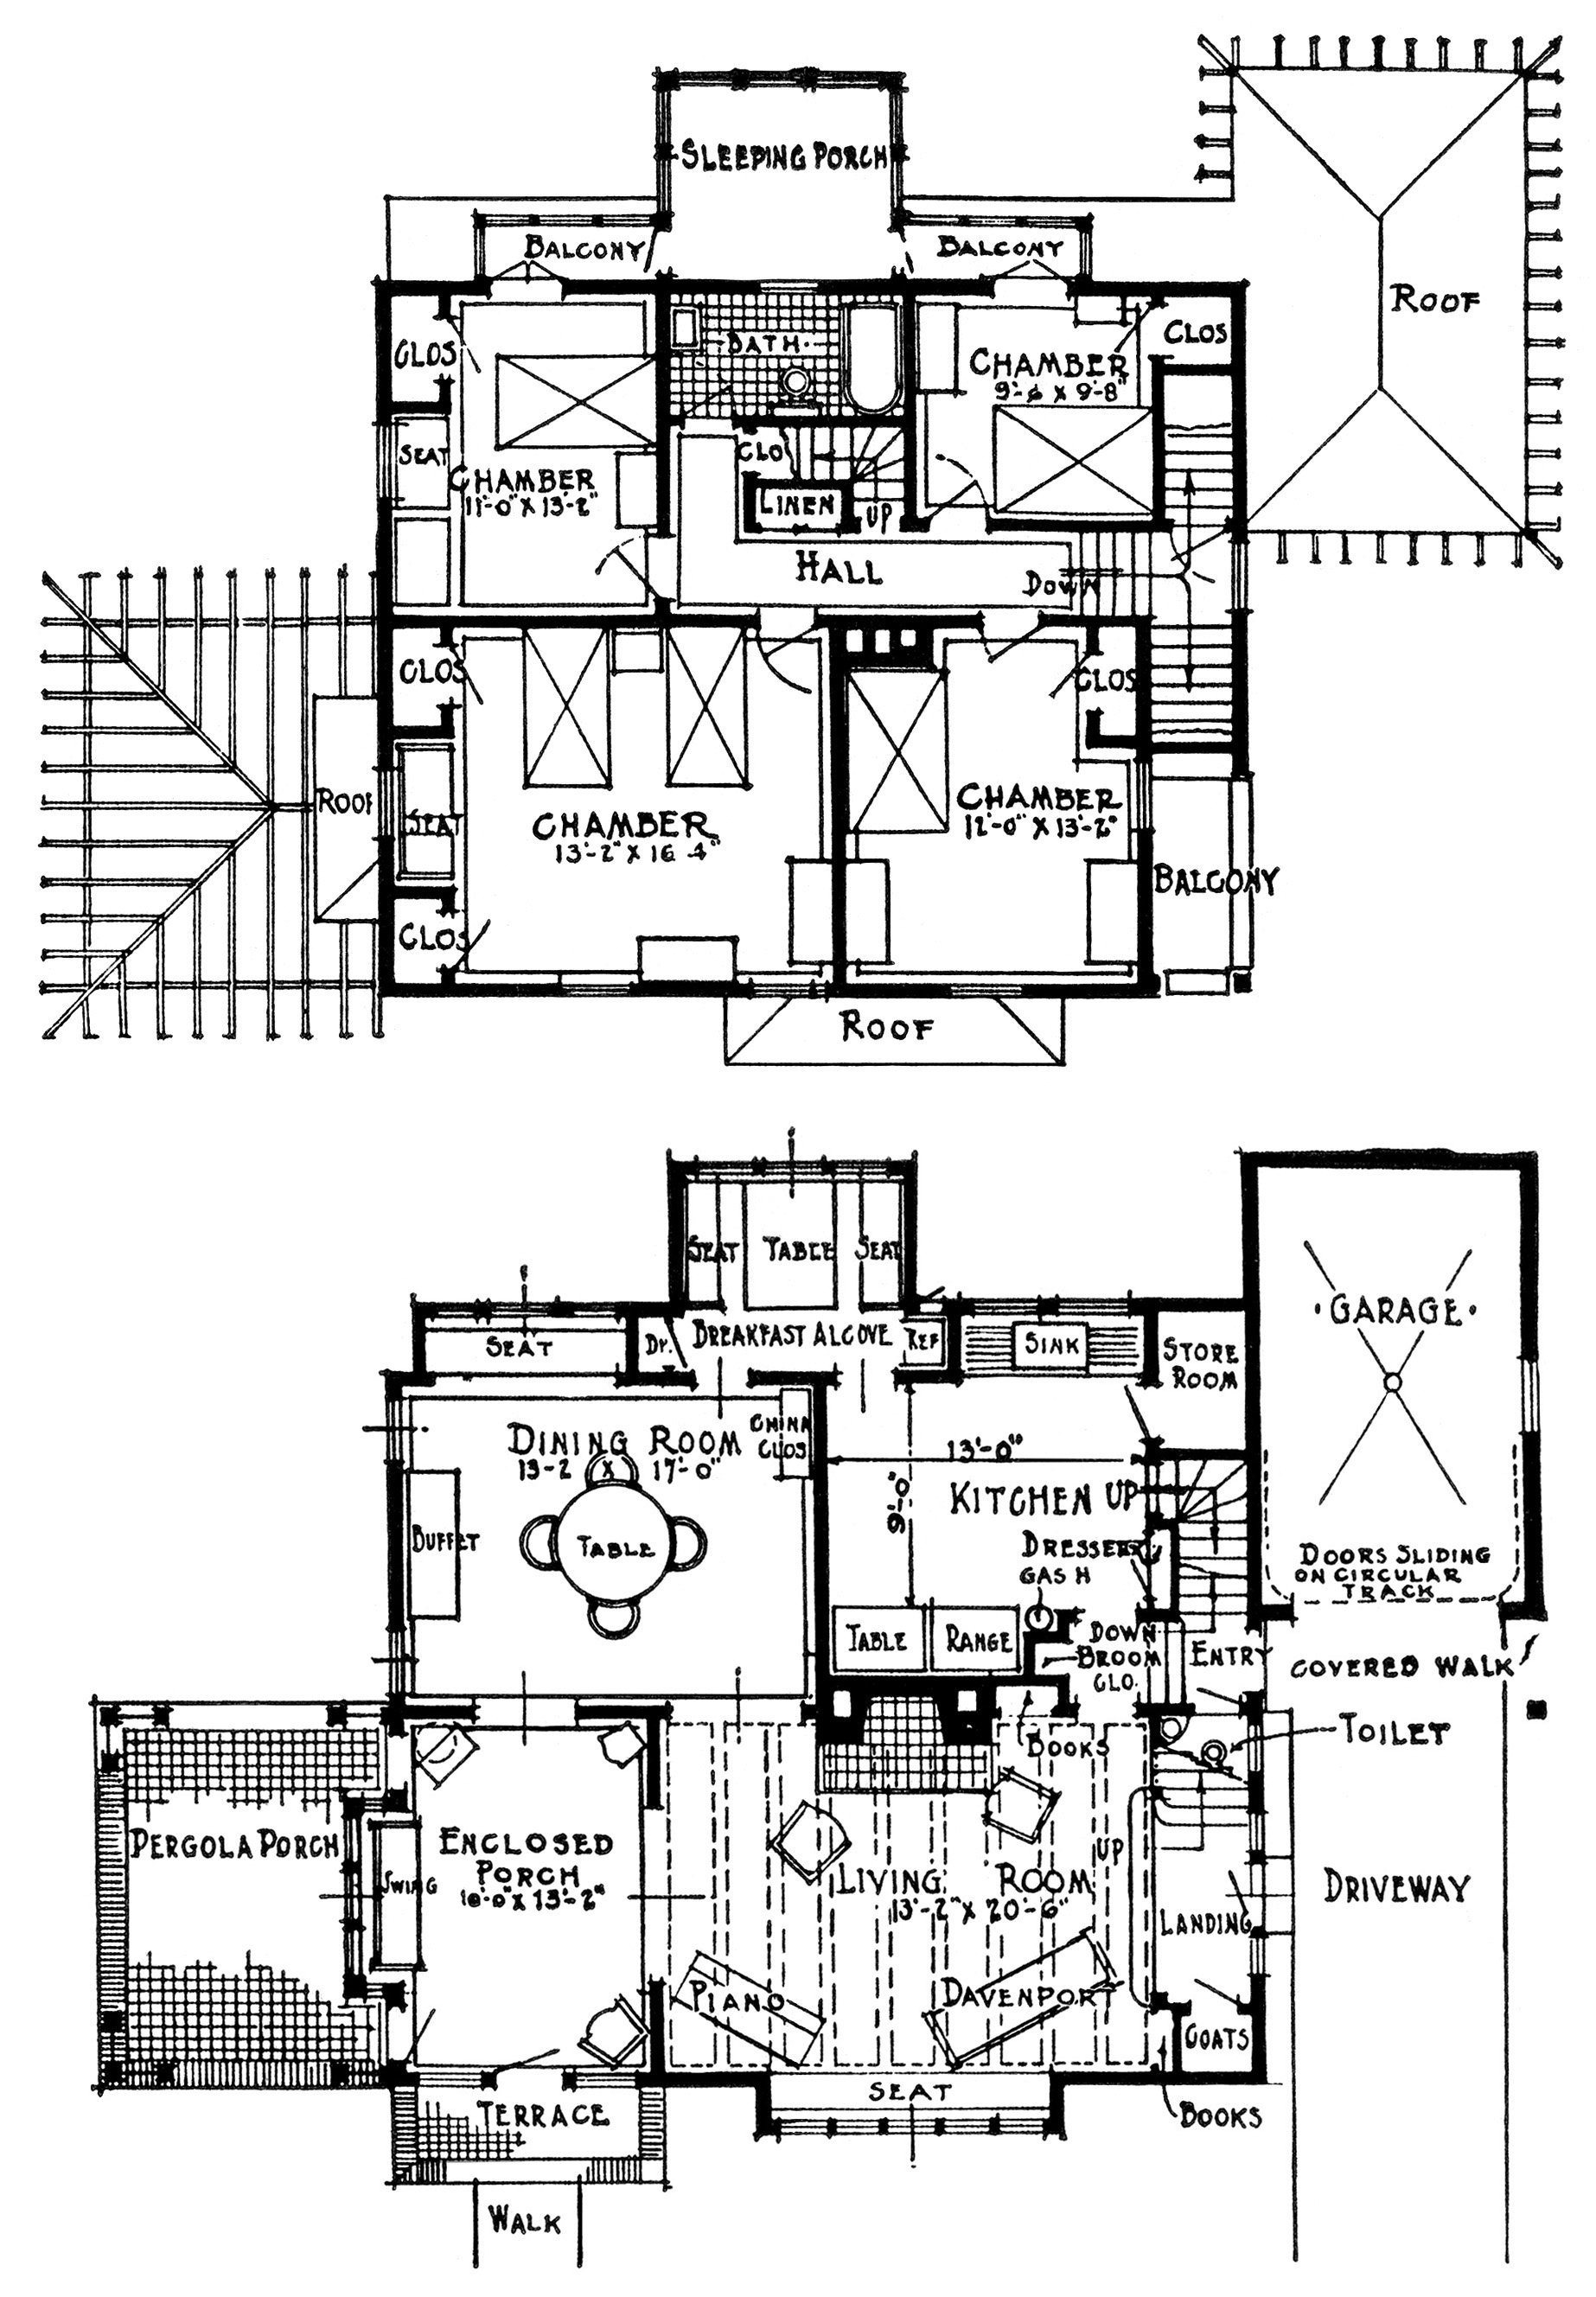 Vintage homes with attached garages free vintage image for Antique house floor plans